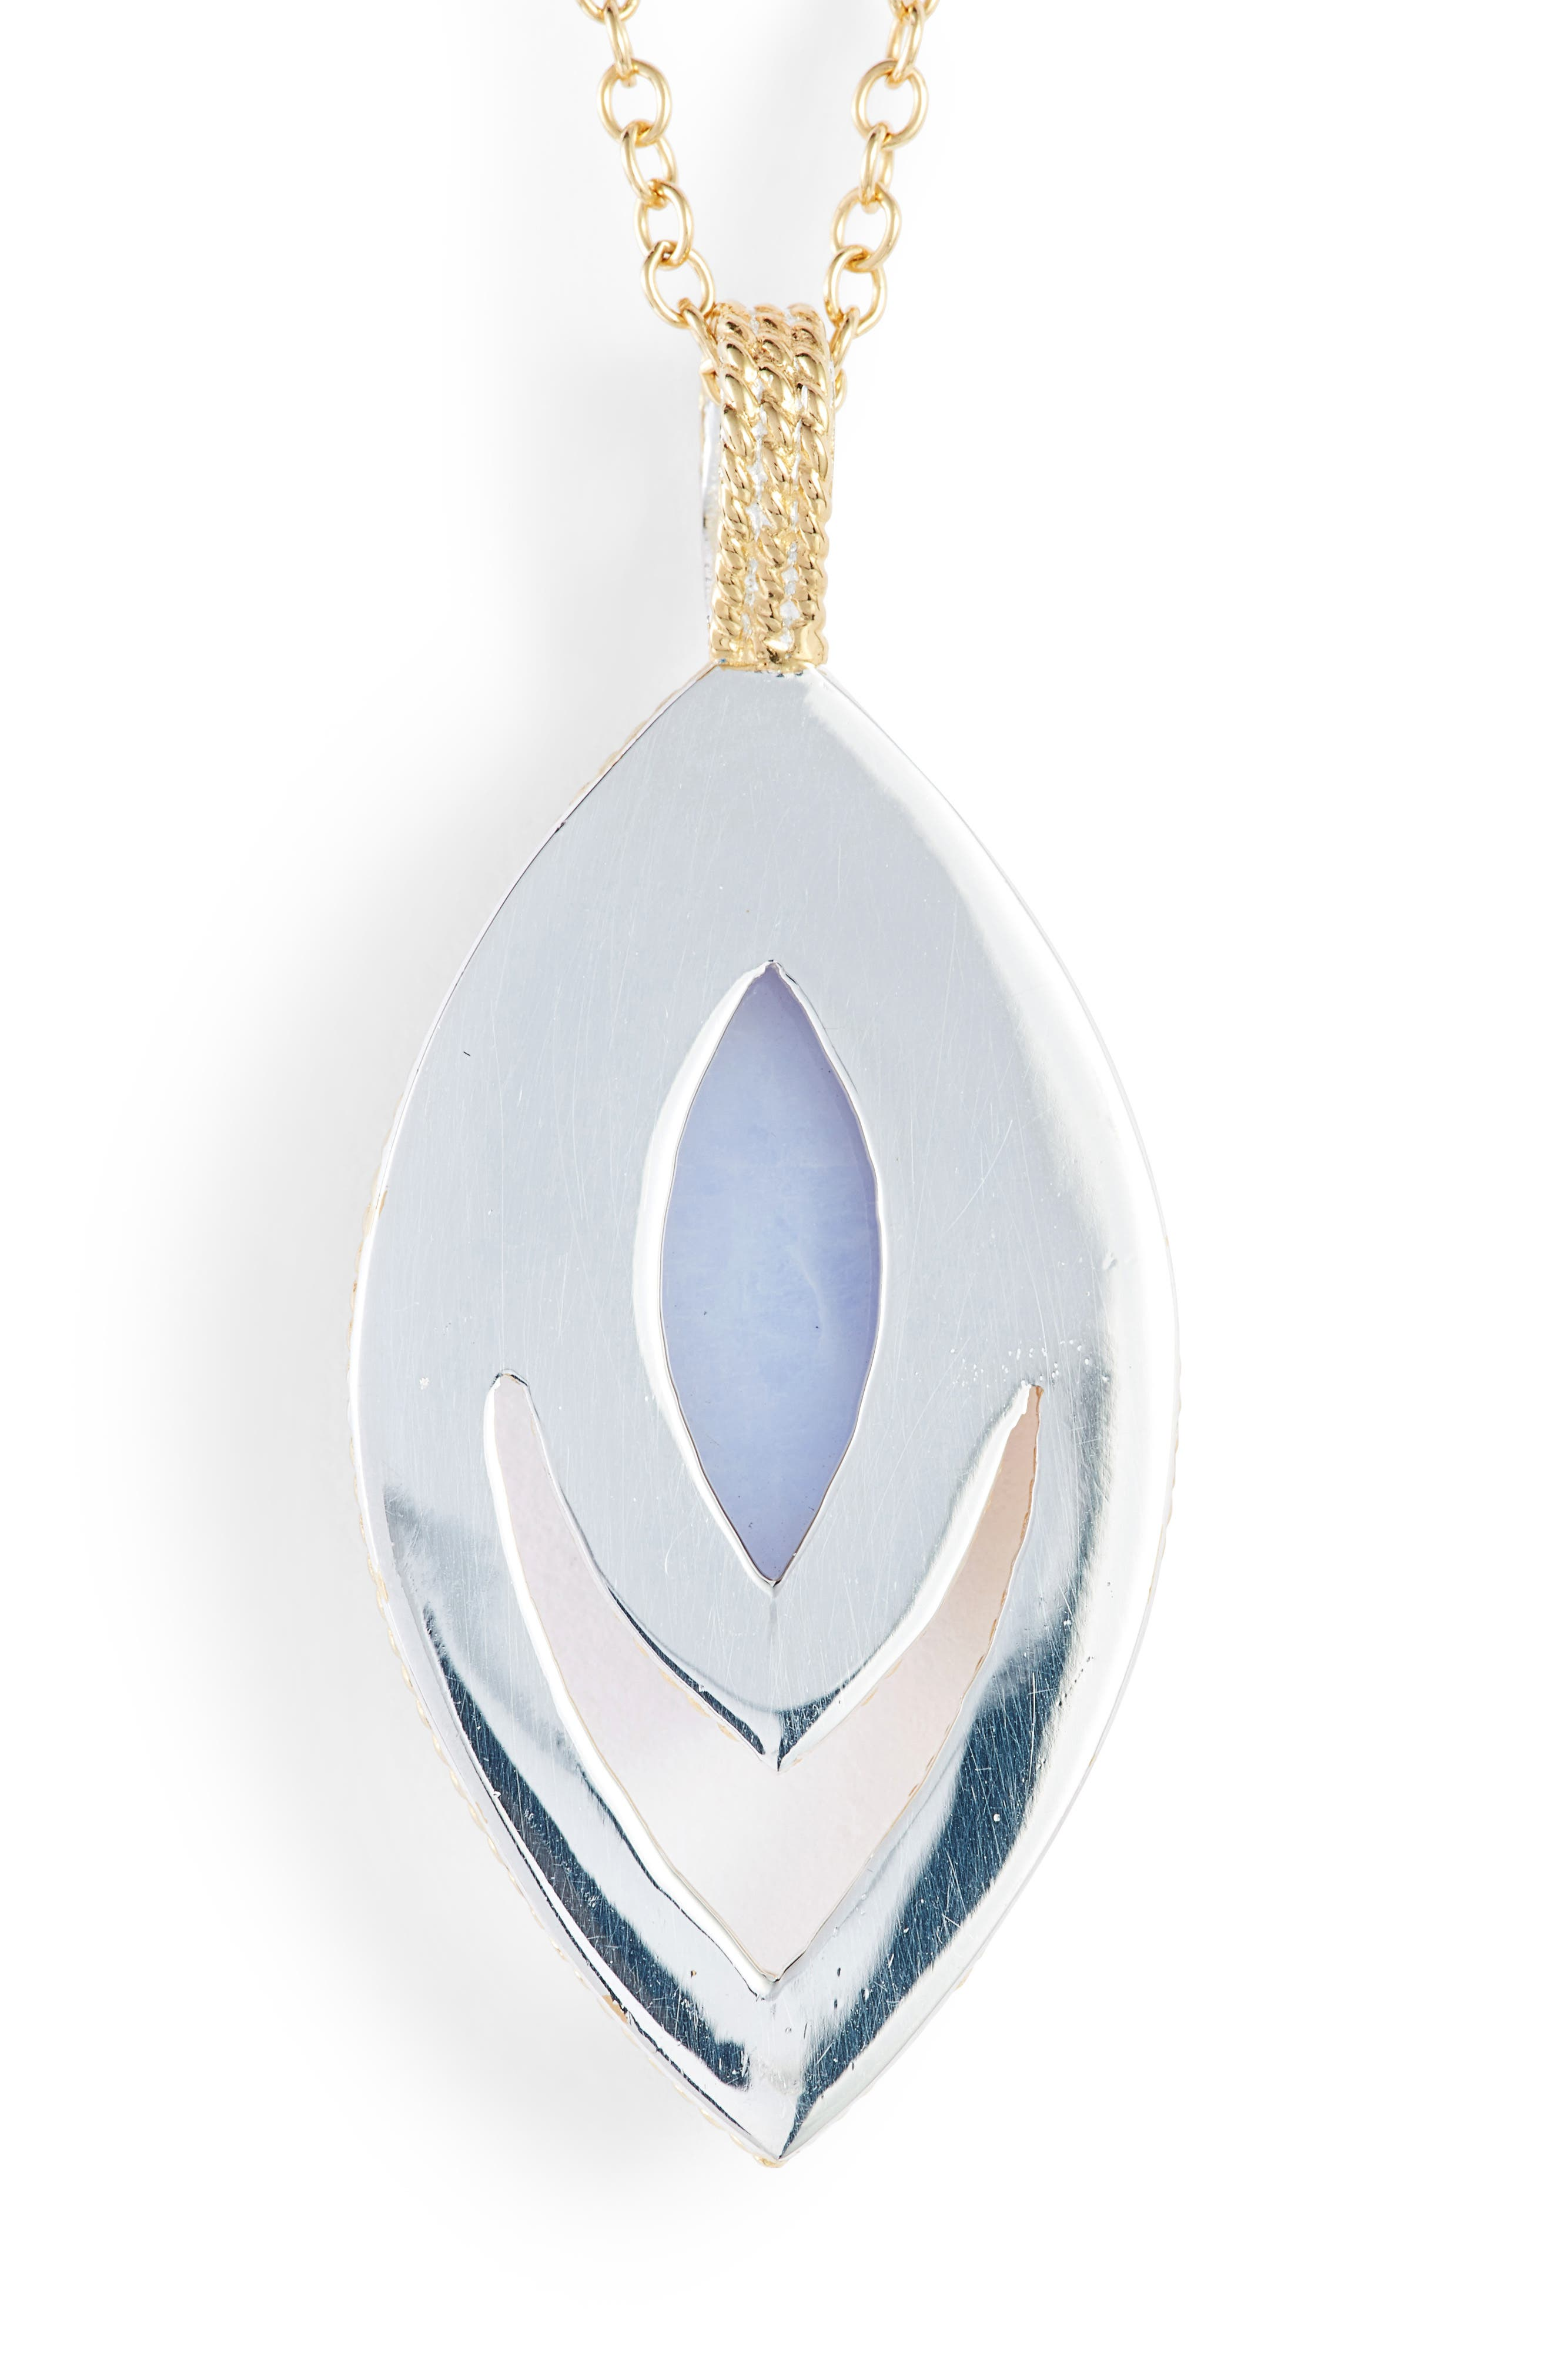 Chalcedony Doublet Pendant Necklace,                             Alternate thumbnail 4, color,                             Gold/ Blue Chalcedony